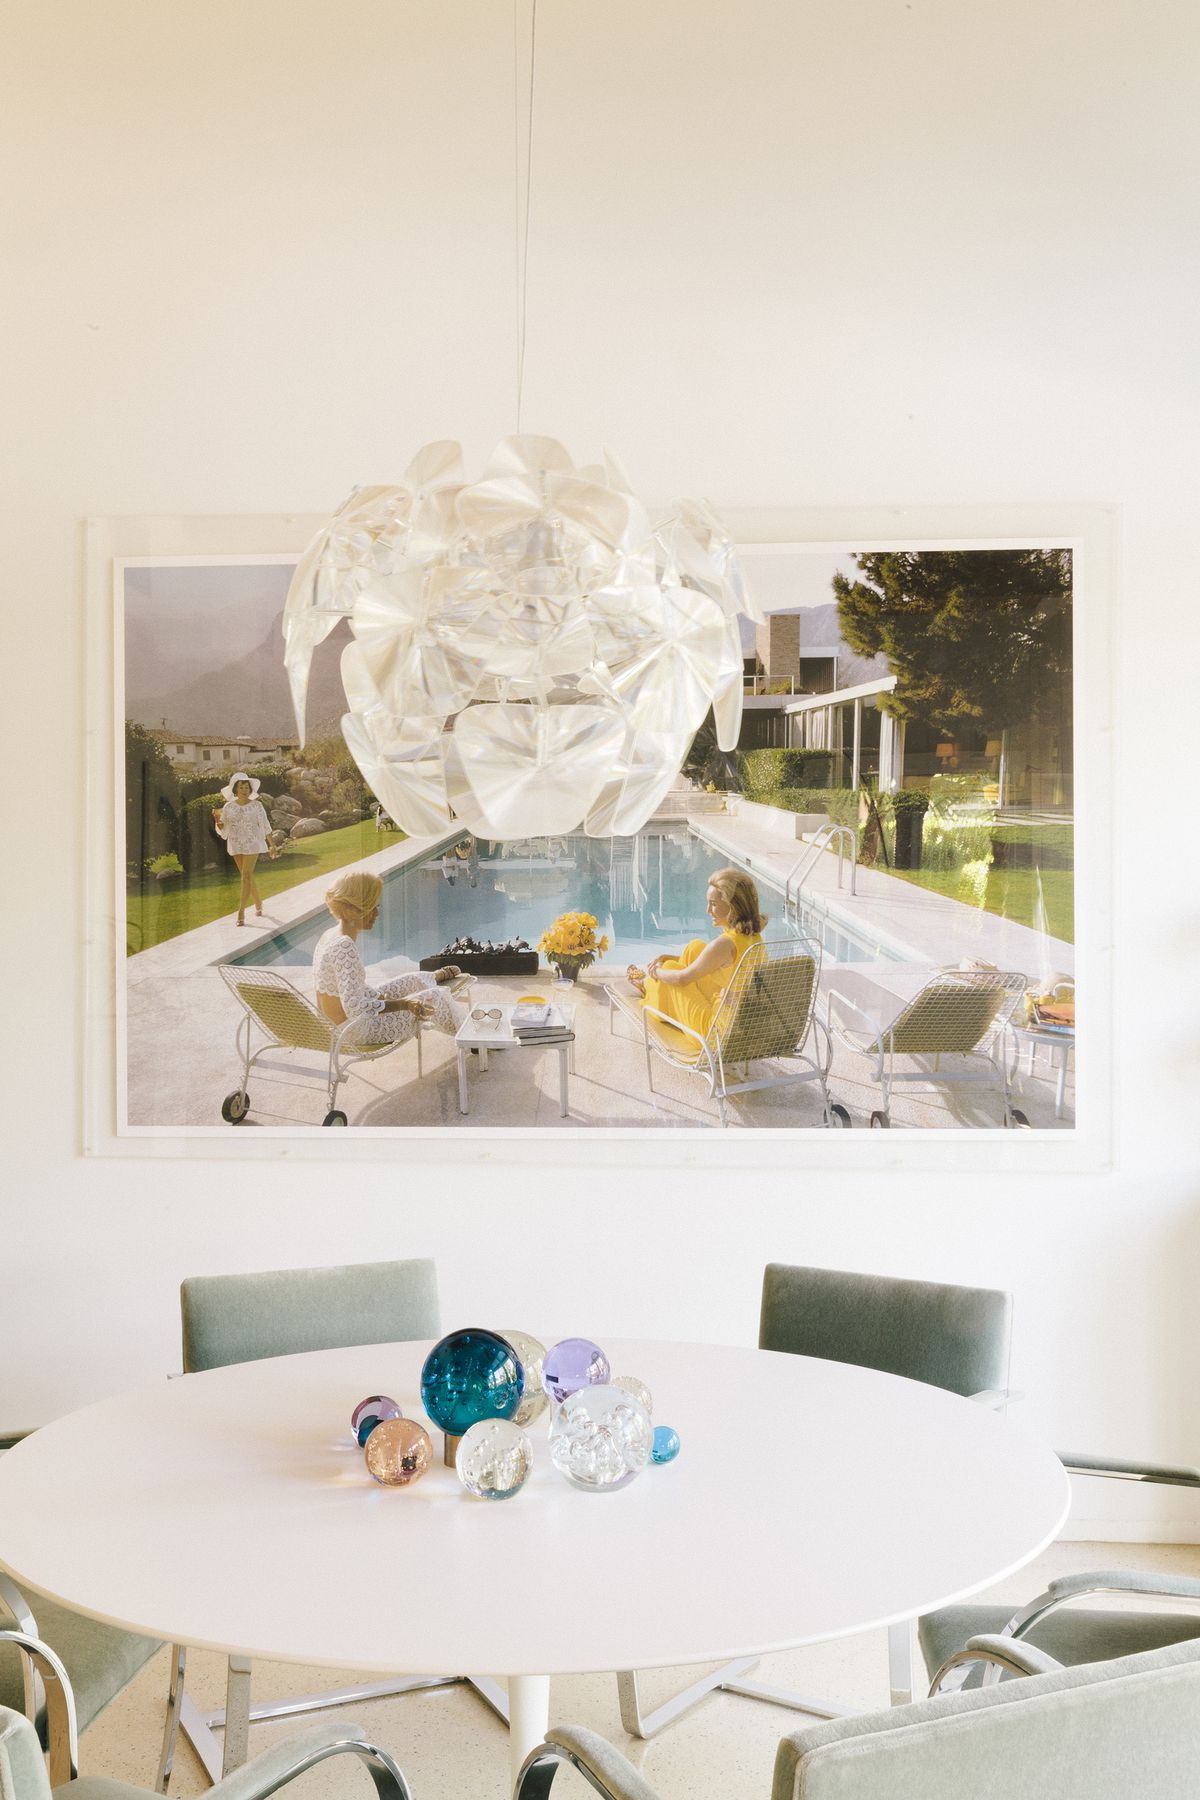 There is a round white table with several chairs. On the table are various assorted colorful glass baubles. Above the table on the white wall is a colorful art print. There is a hanging white light fixture.